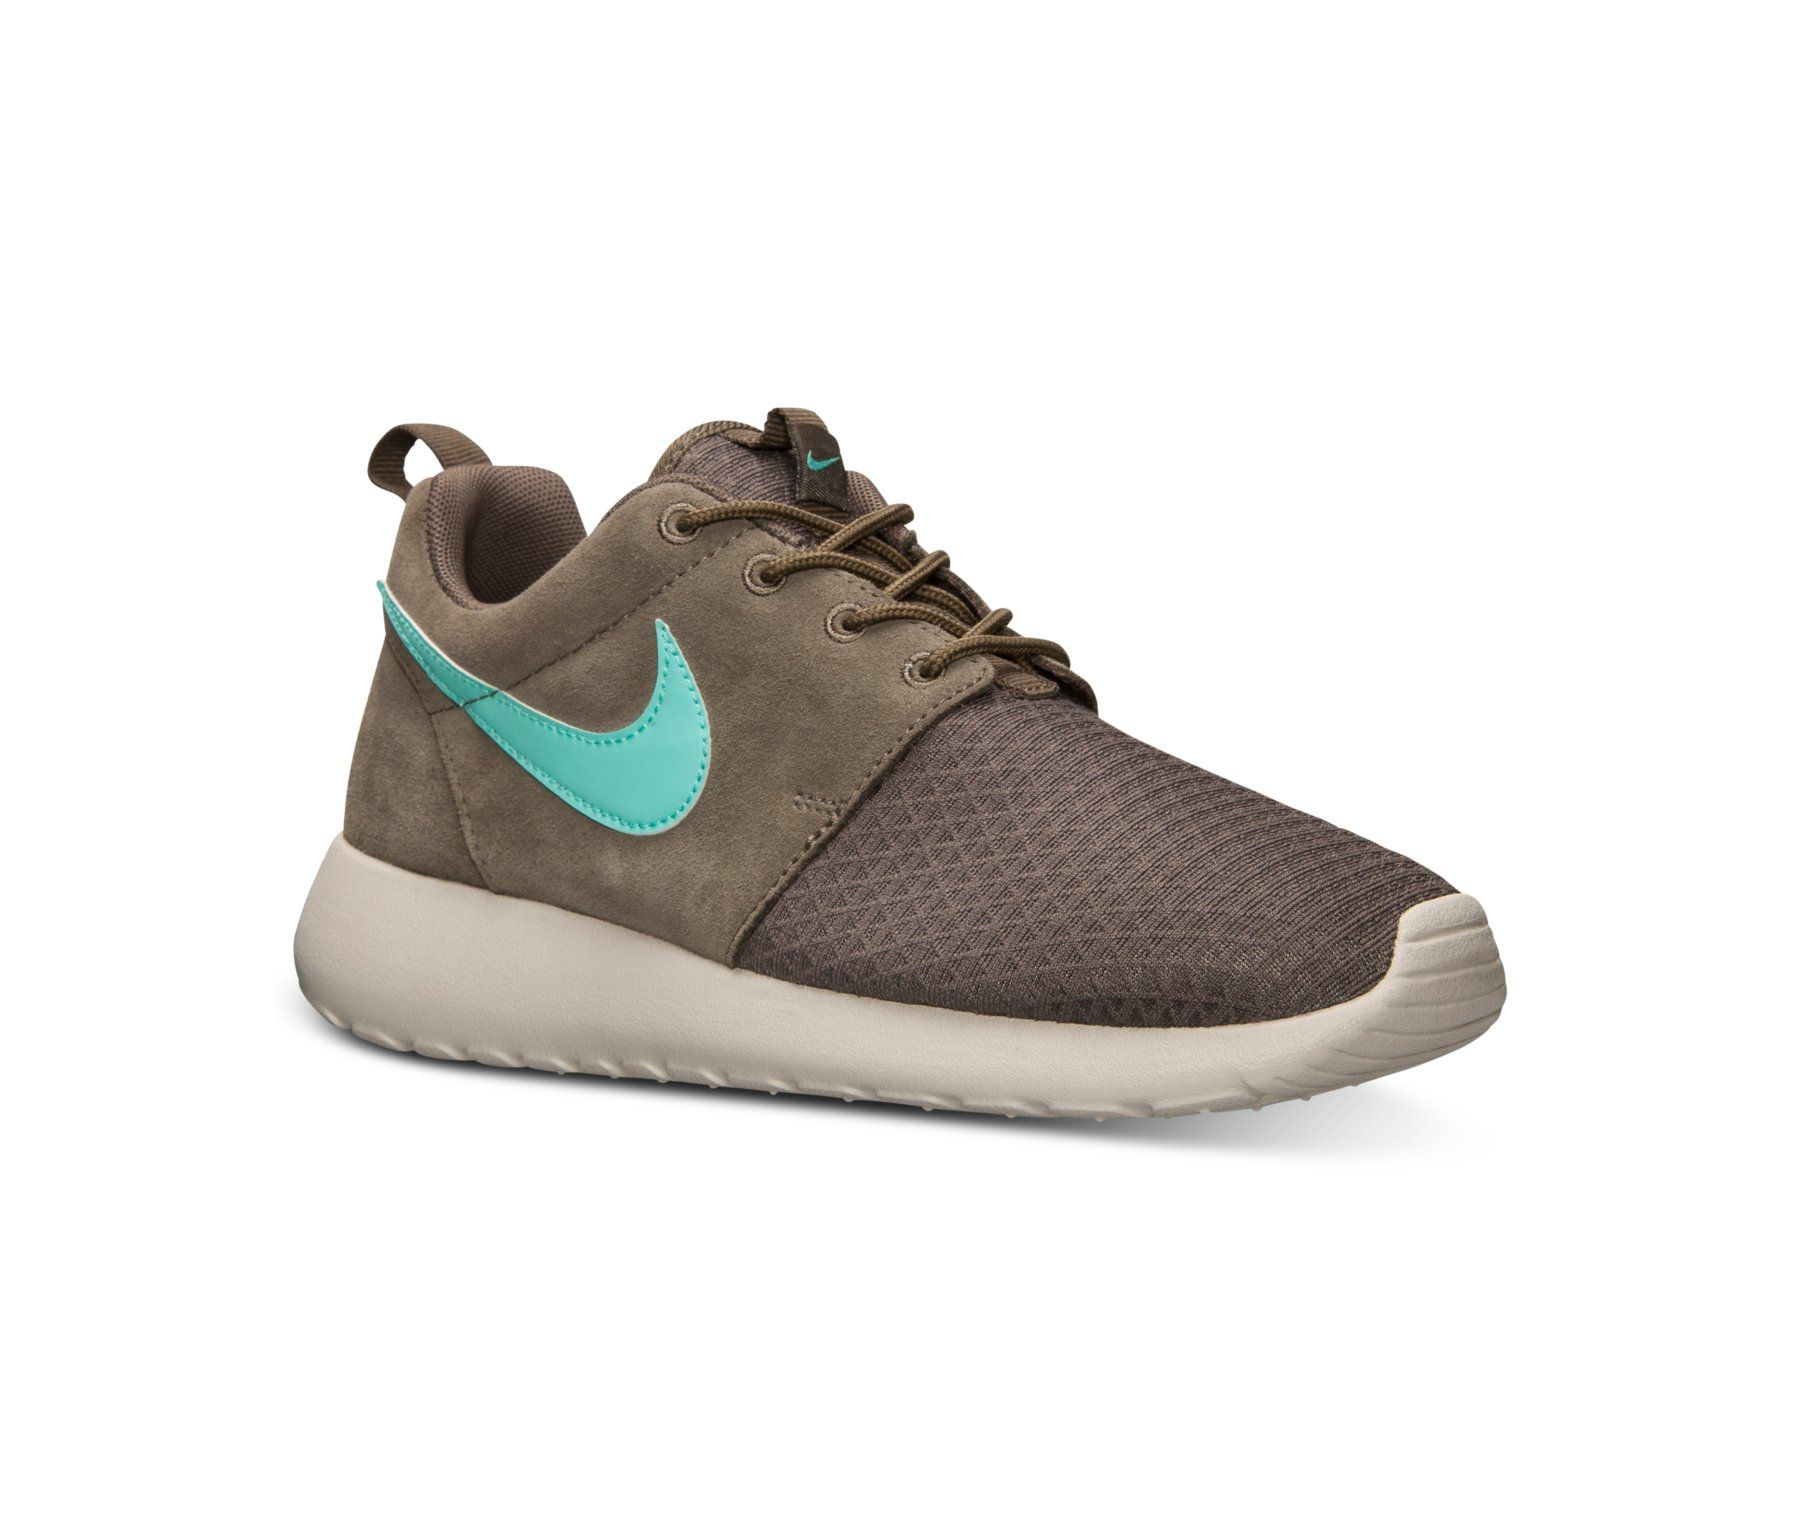 Nike Women's Roshe Run Winter Casual Sneakers from Finish Line - Finish  Line Athletic Sneakers - Shoes - Macy's